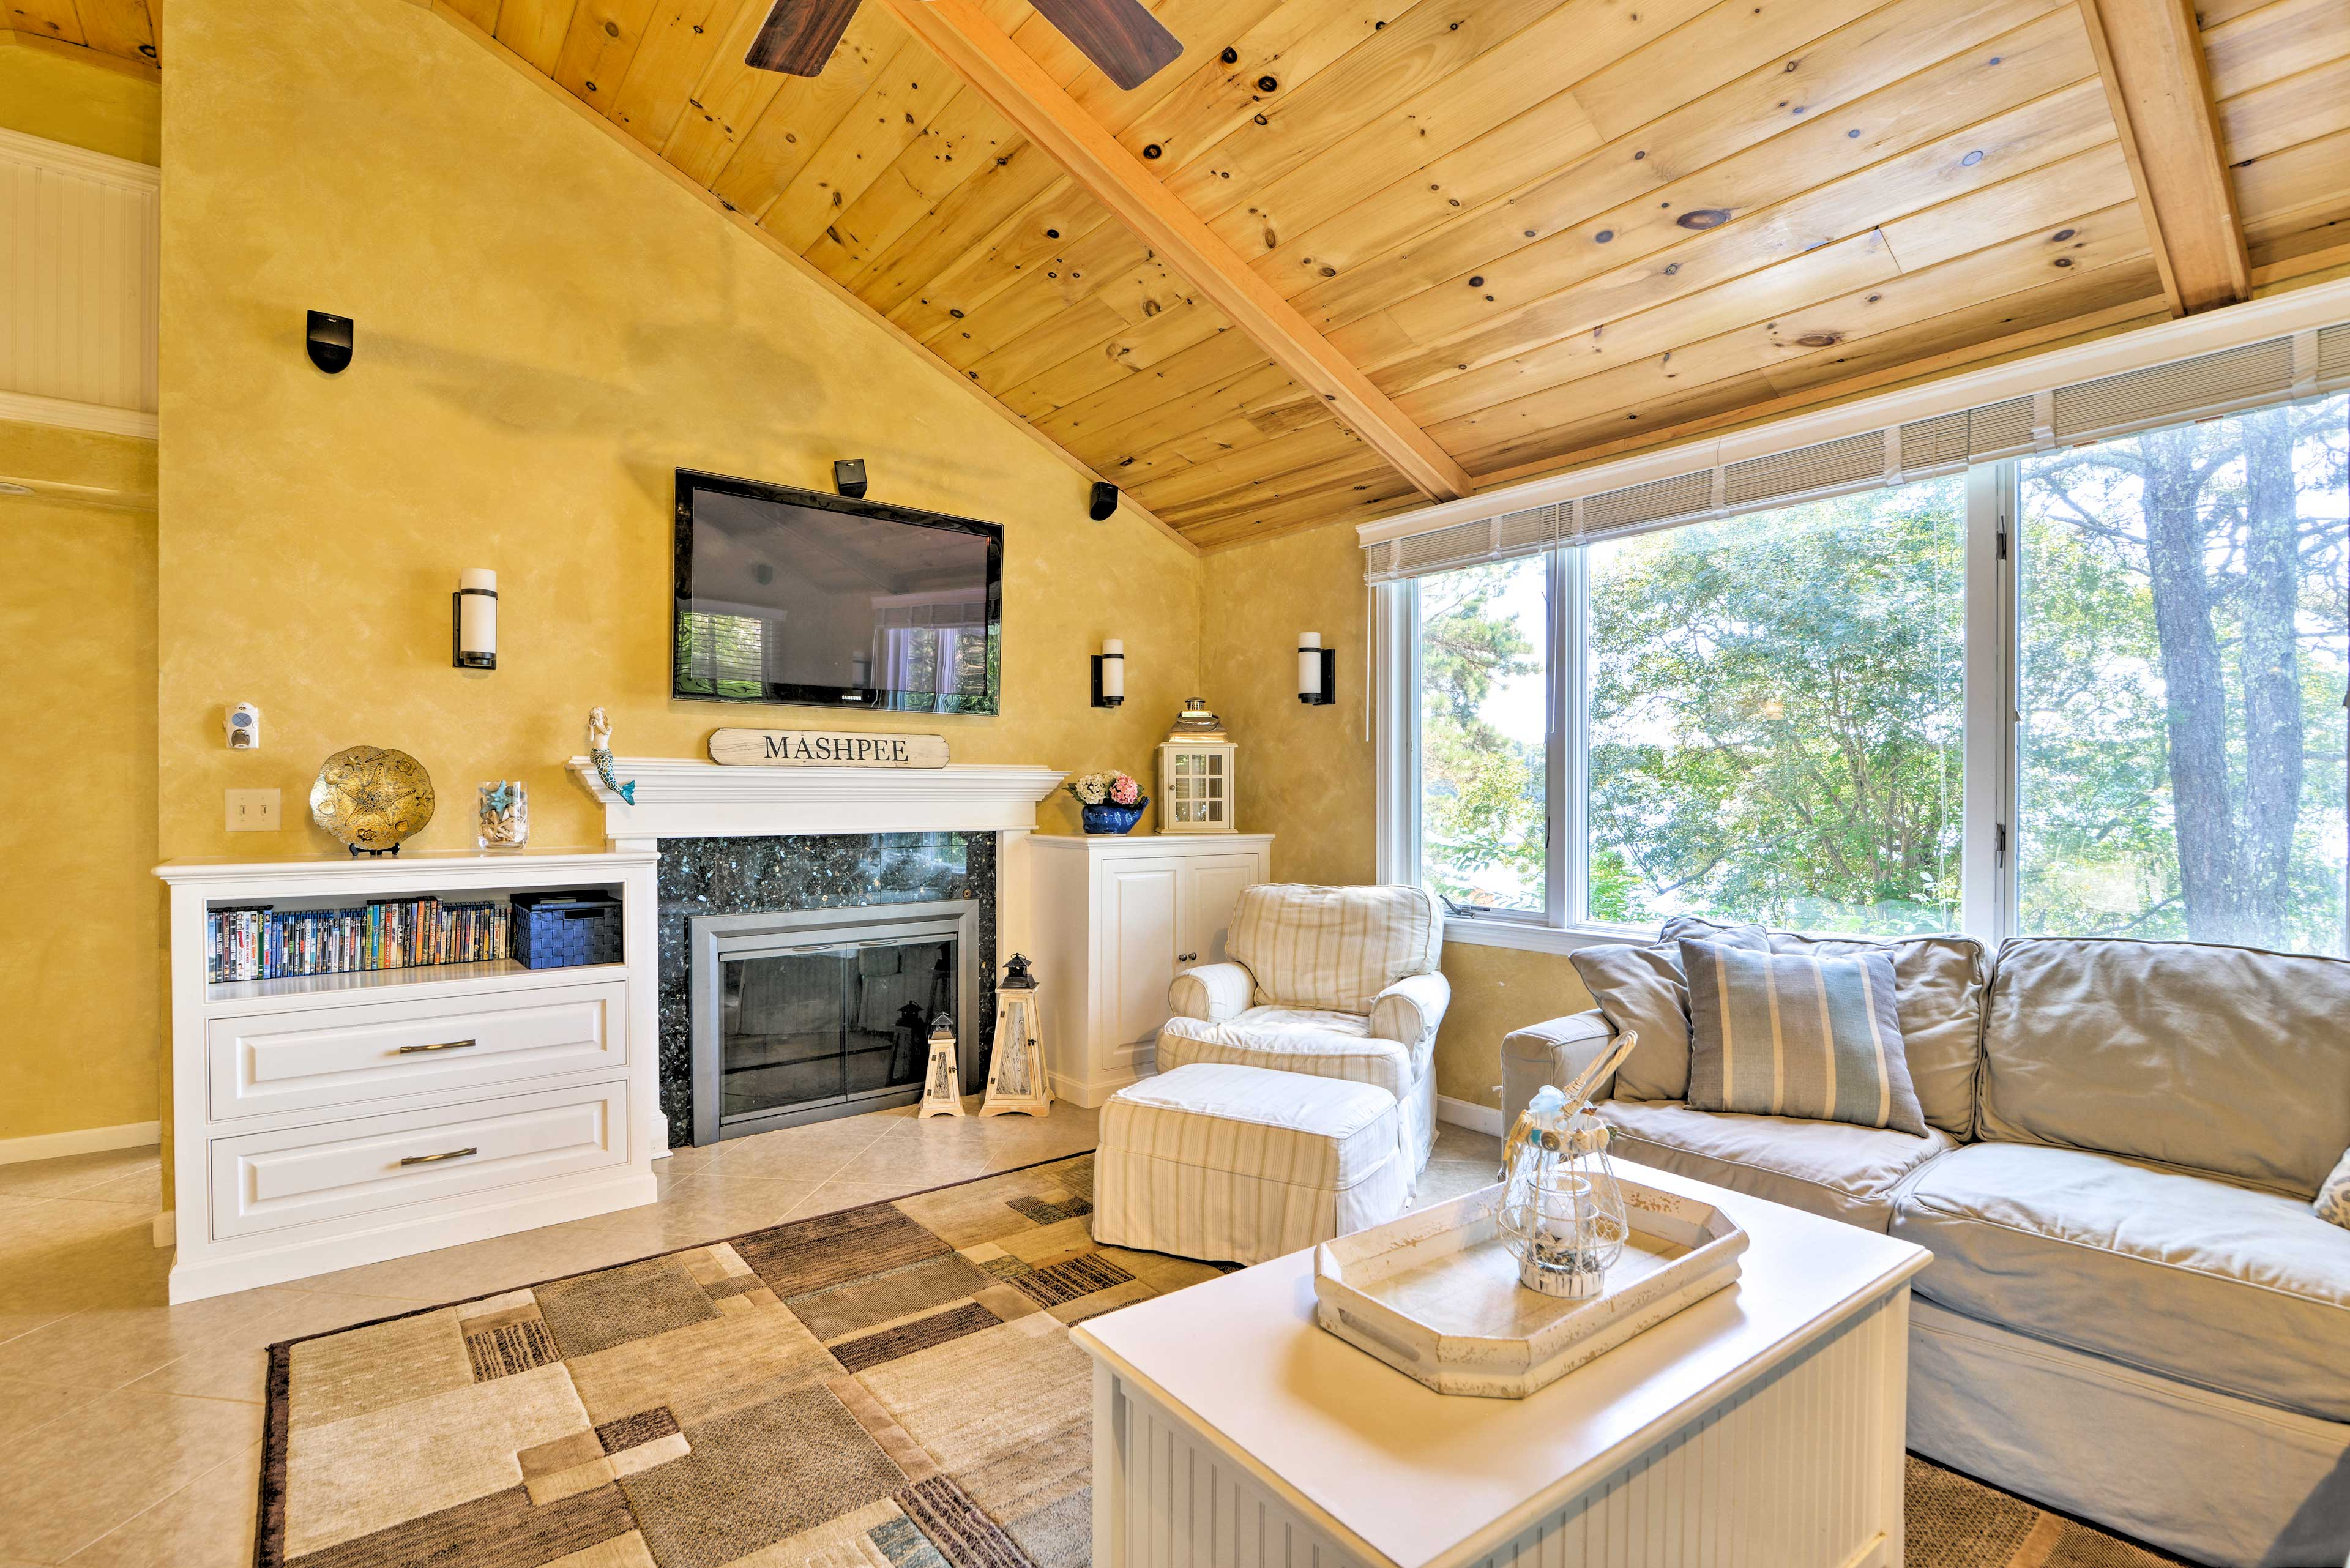 You're sure to love the dazzling interior offering all the comforts of home!